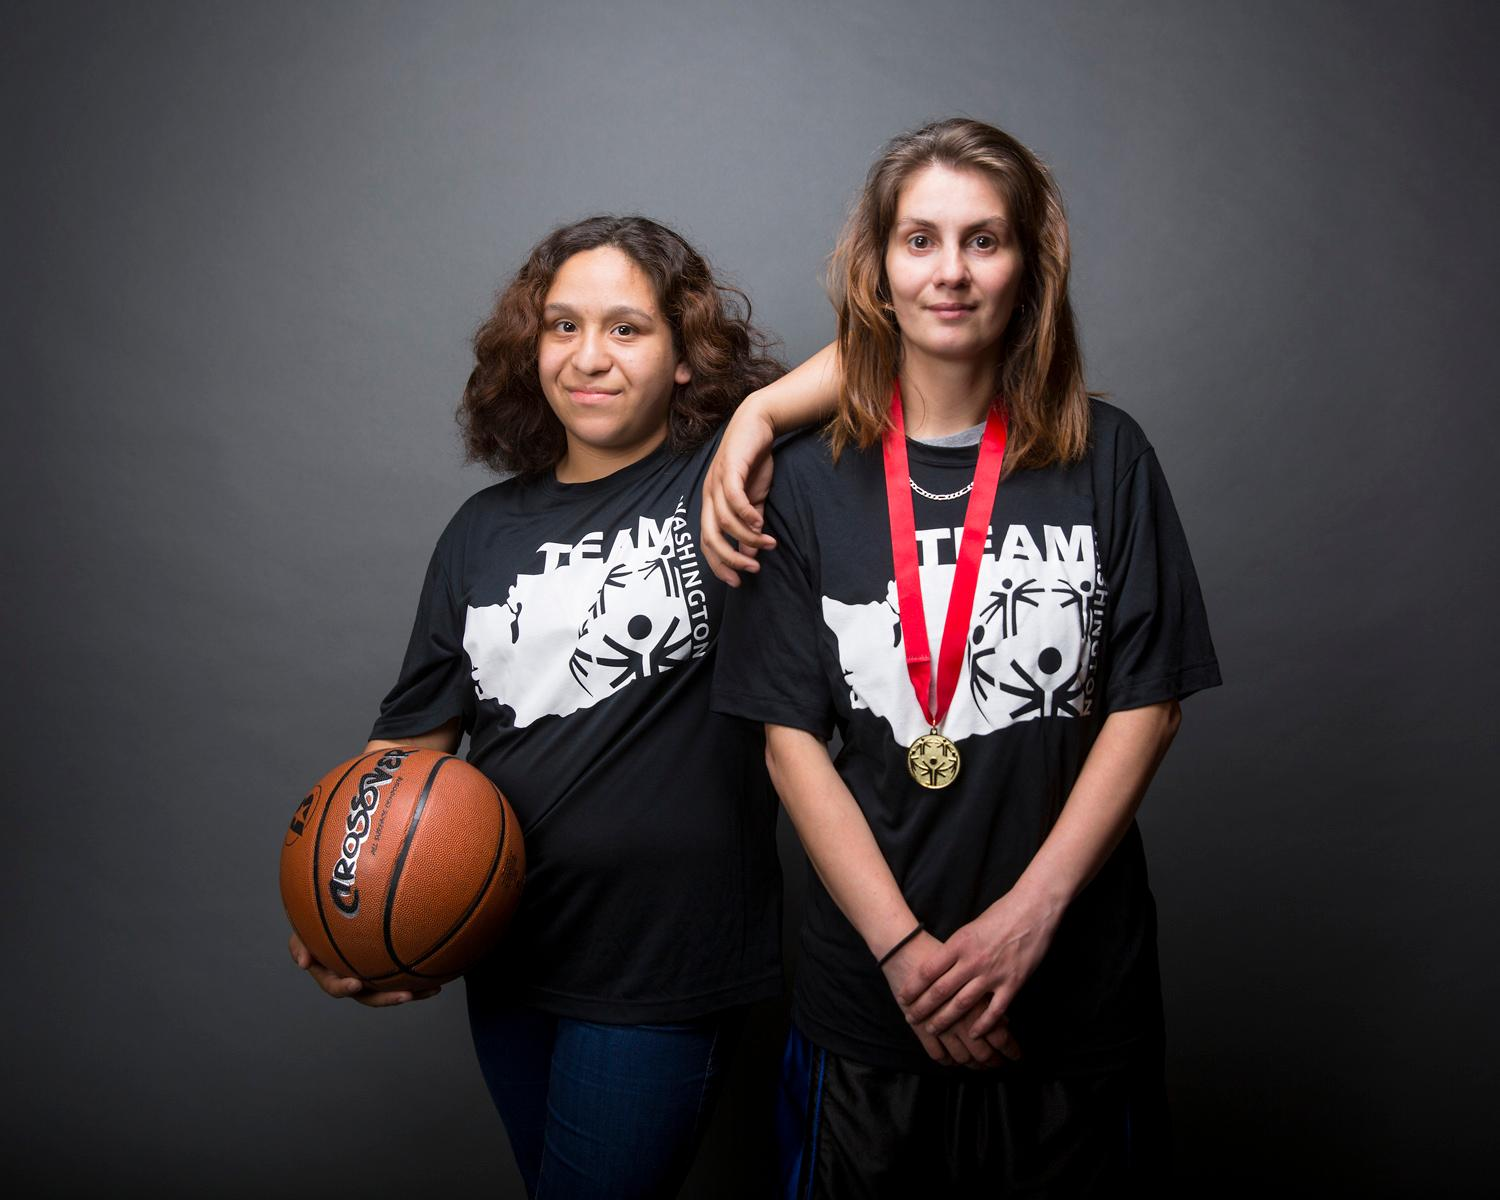 Introducing Melanie and Gina! The pair will be competing in basketball. The Special Olympics USA will take place in Seattle from July 1-6, with a grand opening ceremony and Parade of Athletes and the lighting of the Special Olympics Flame of Hope. (Sy Bean / Seattle Refined)